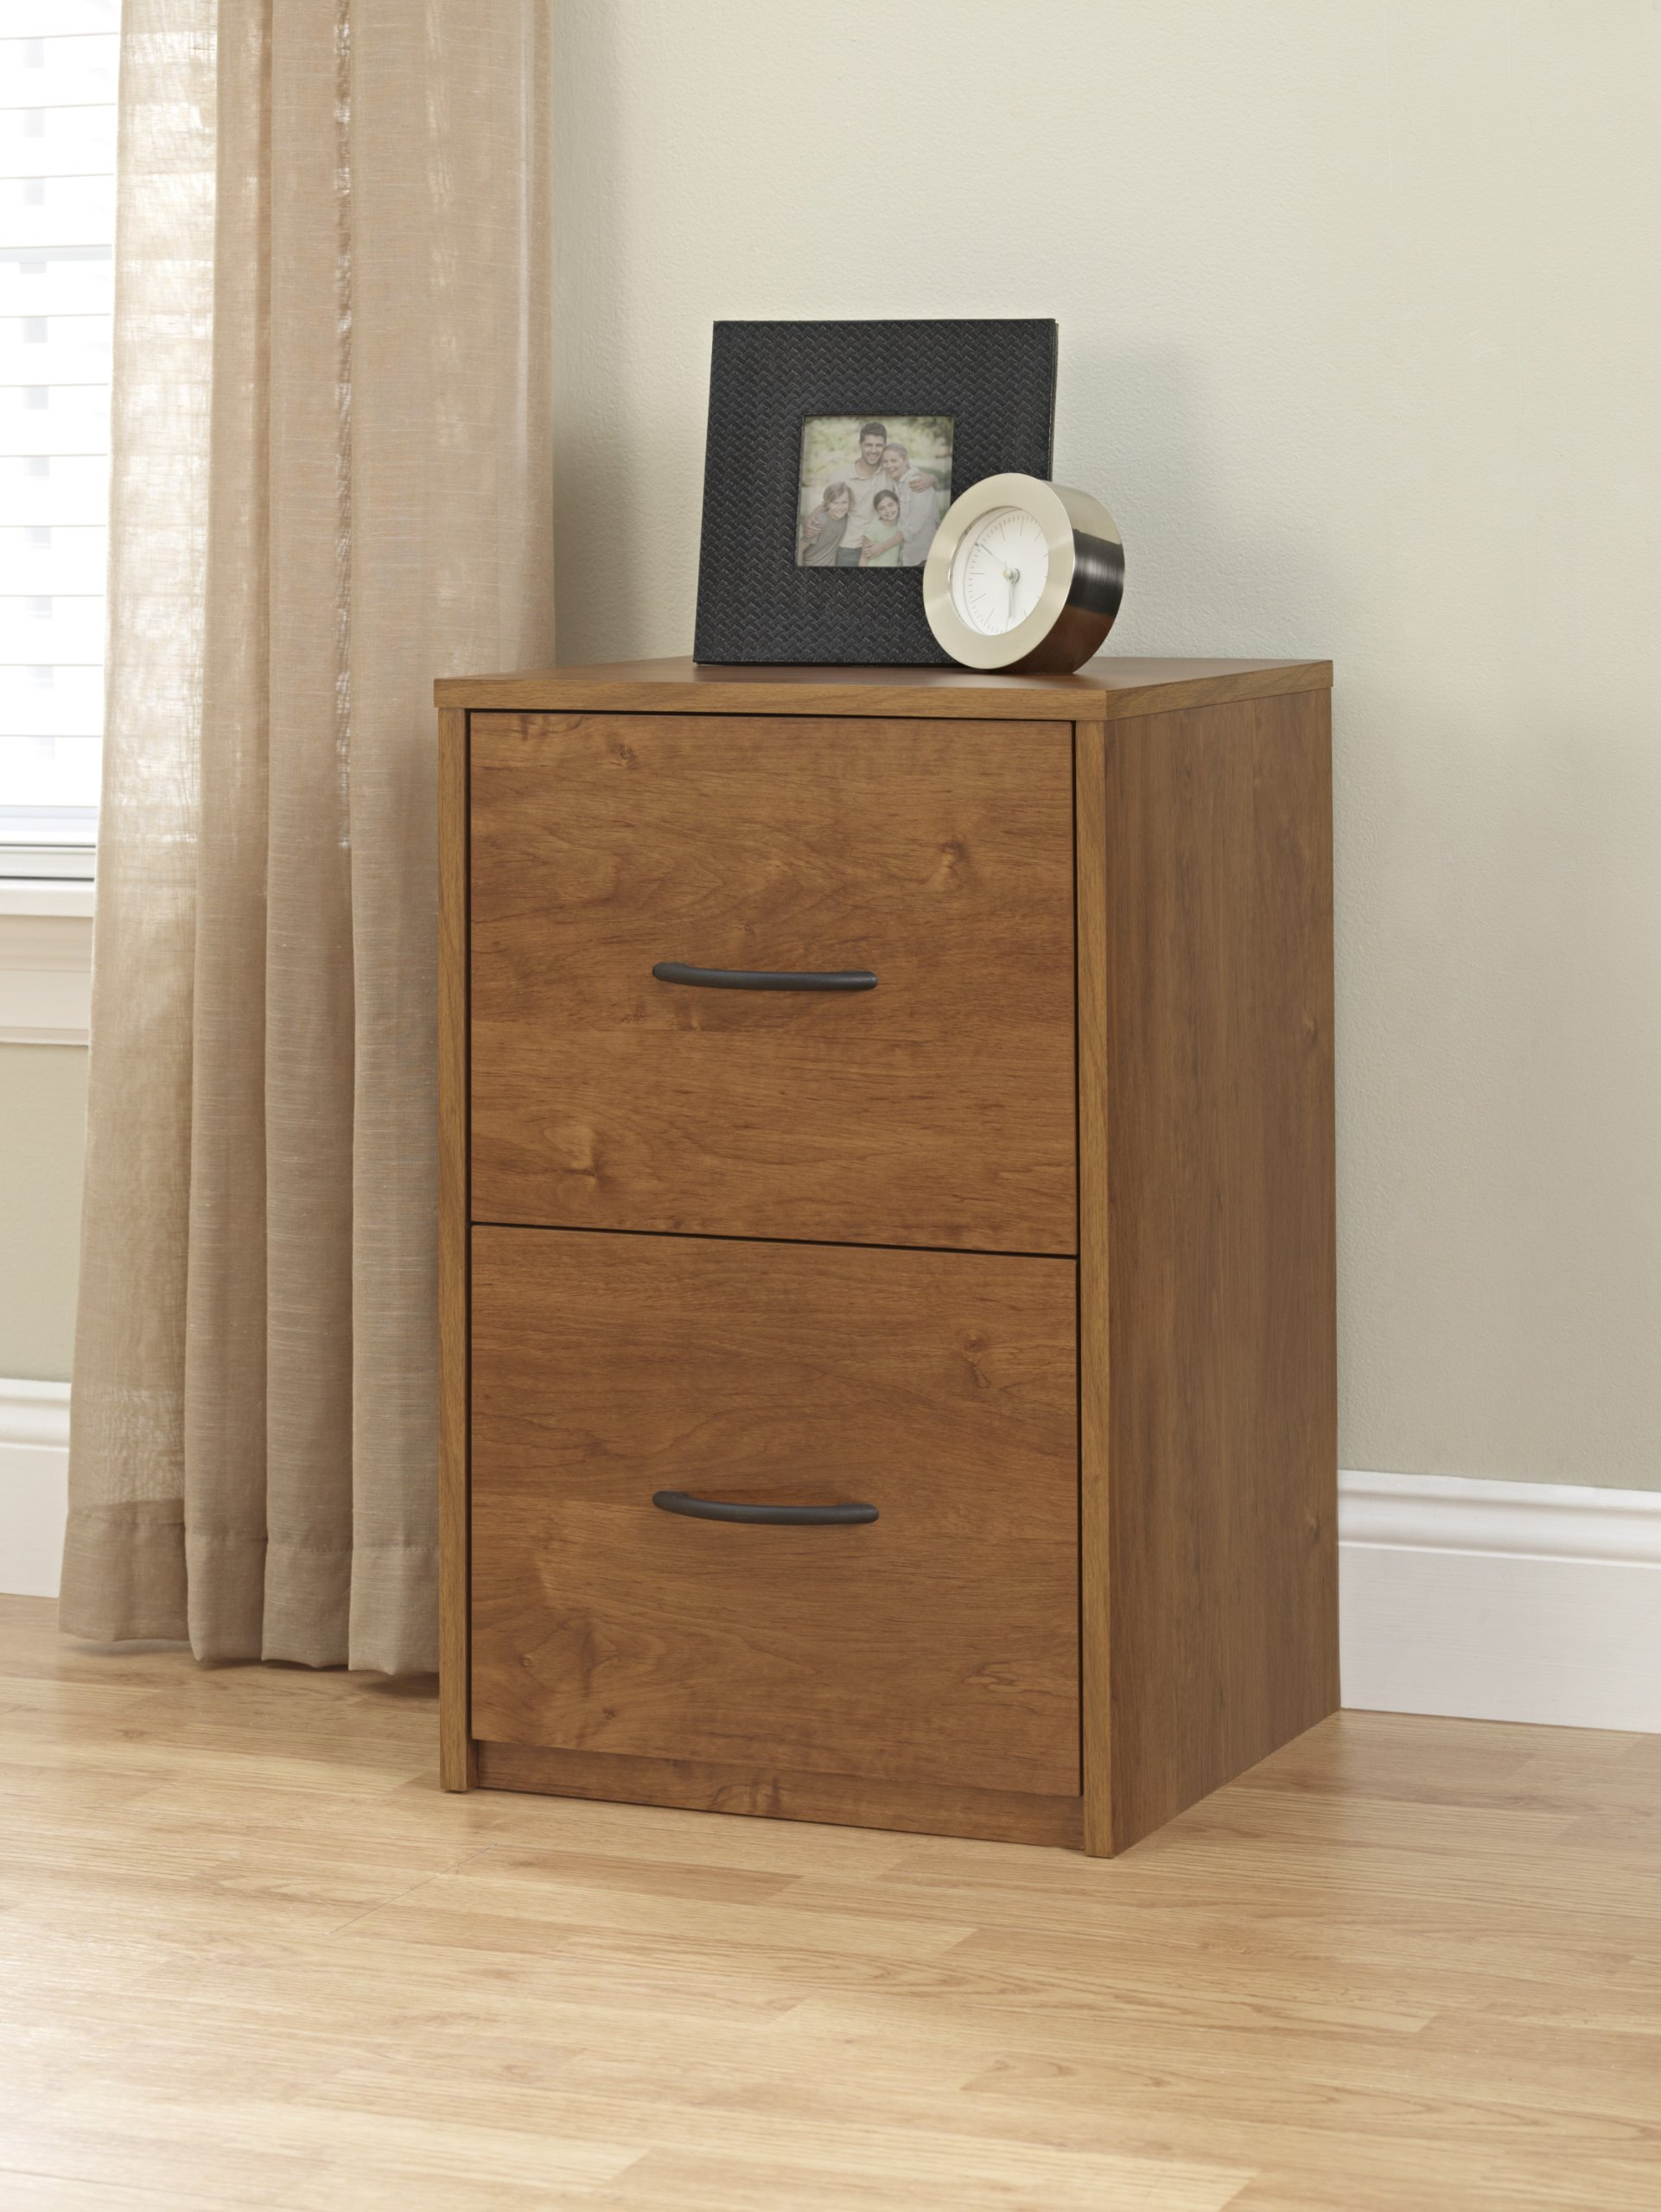 Ameriwood Home Core 2 Drawer File Cabinet, Bank Adler